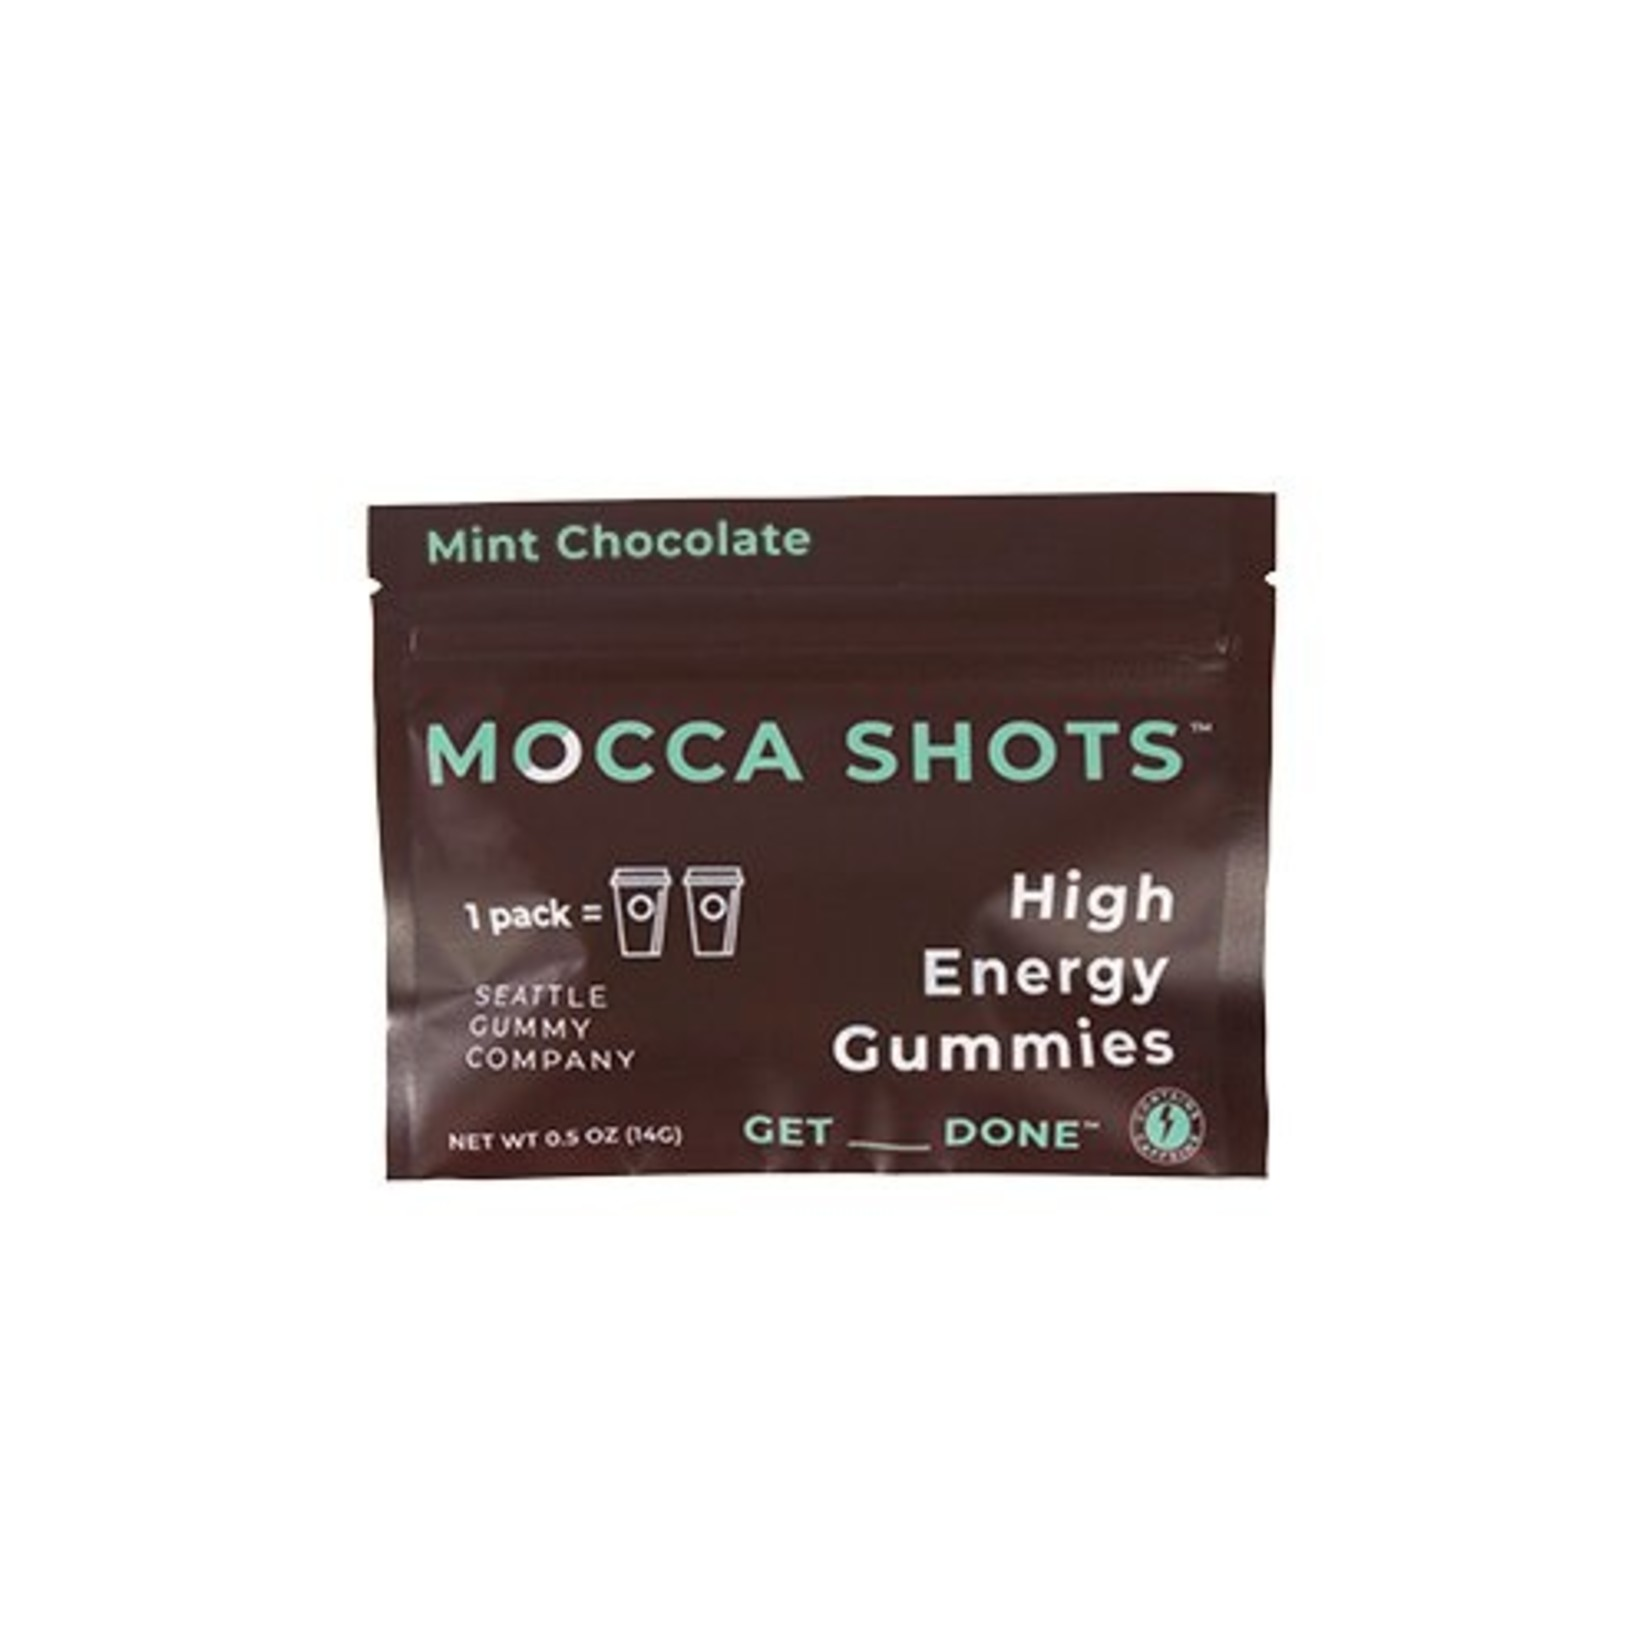 Seattle Gummy Company Mocca Shots Energy Gummies- Mint Chocolate